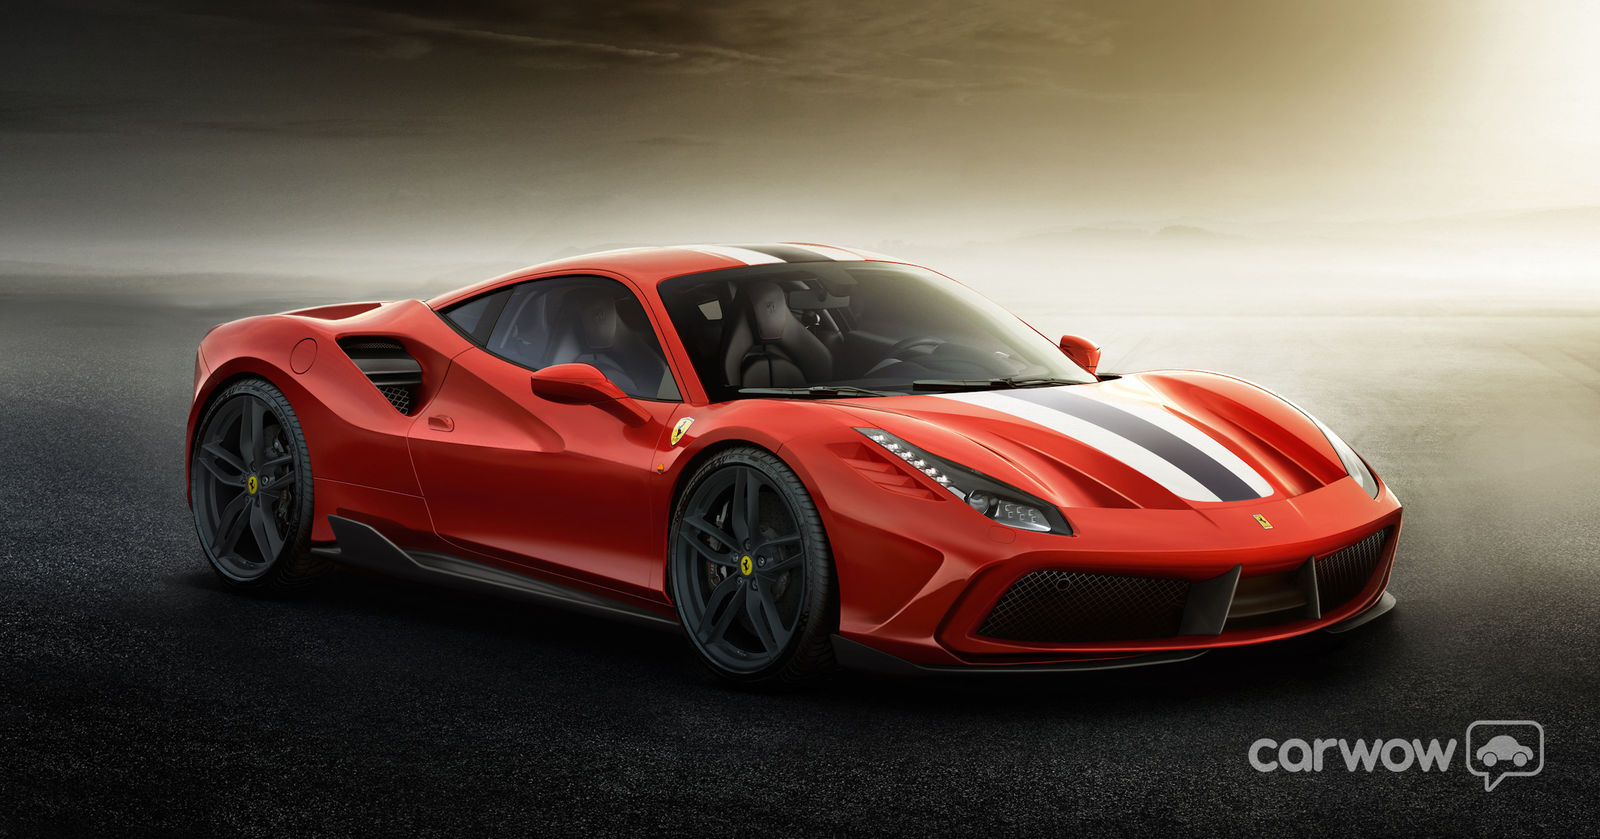 The New Ferrari 488 Gtb Speciale Is Just Se At Its Best